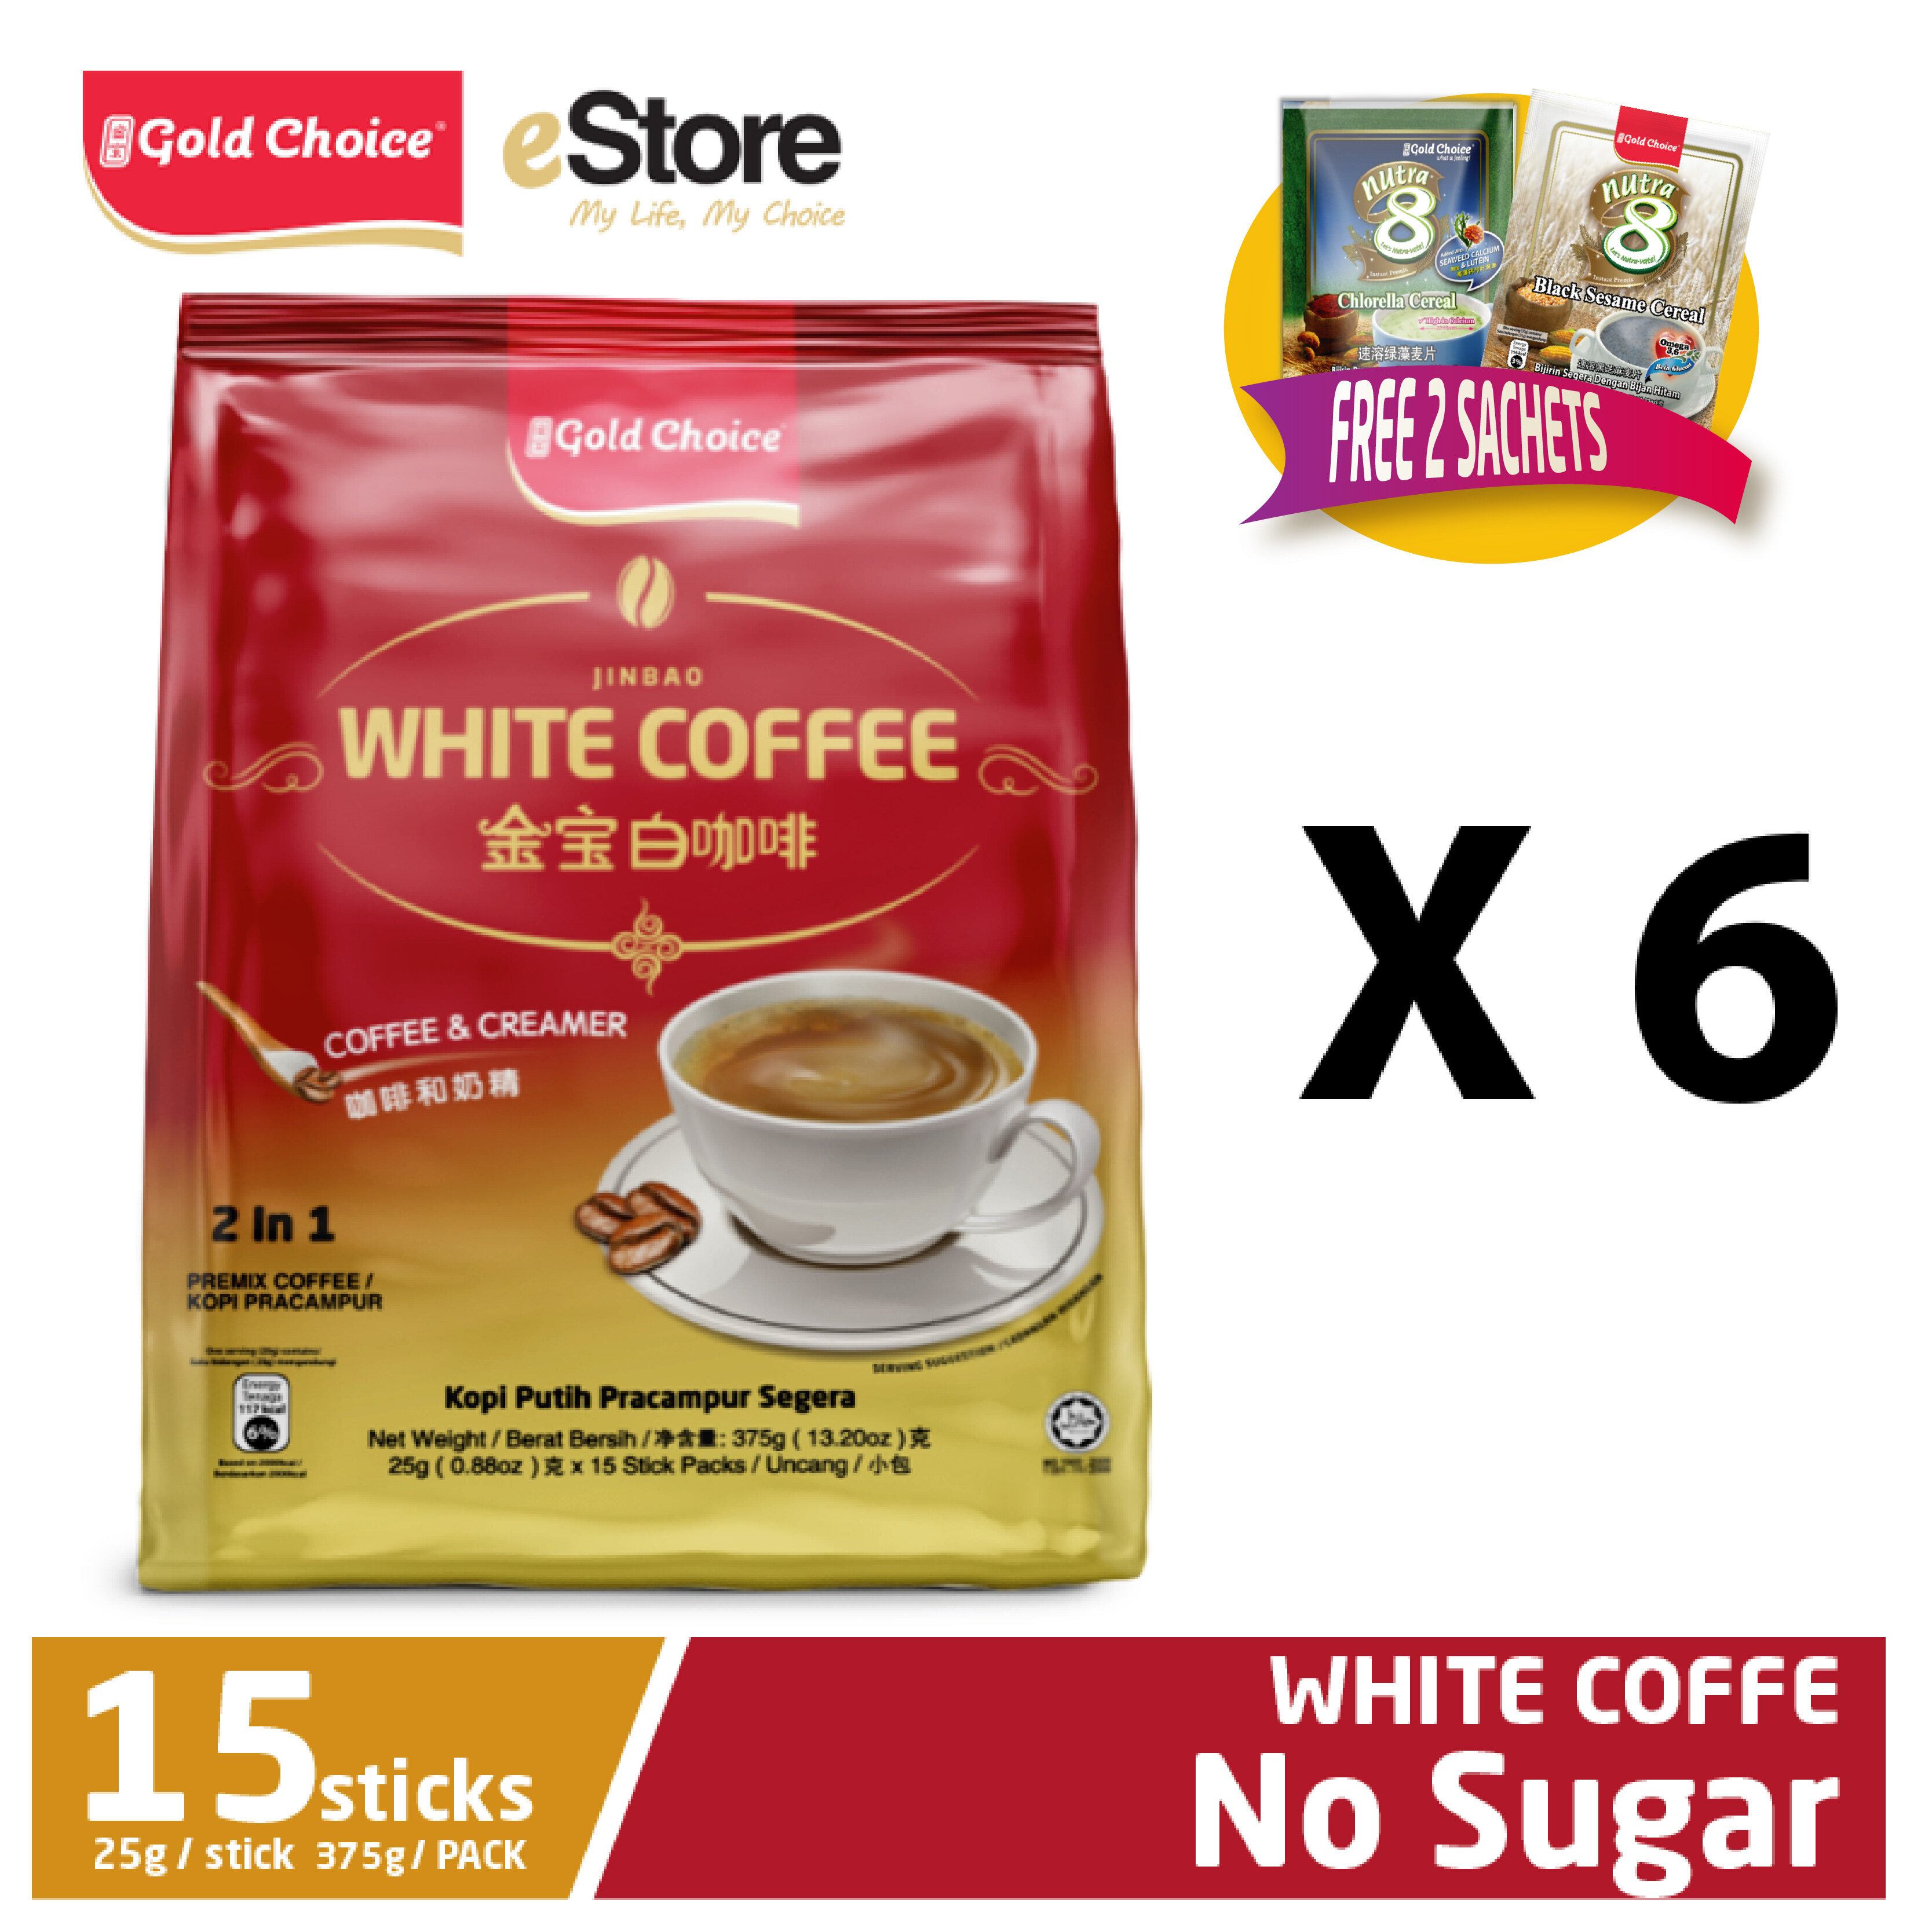 GOLD CHOICE JINBAO White Coffee Unsweetened - (25g X 15'S) X 6 Packs In Bundle [No Sugar] [2 FREE SACHETS PER PACK]